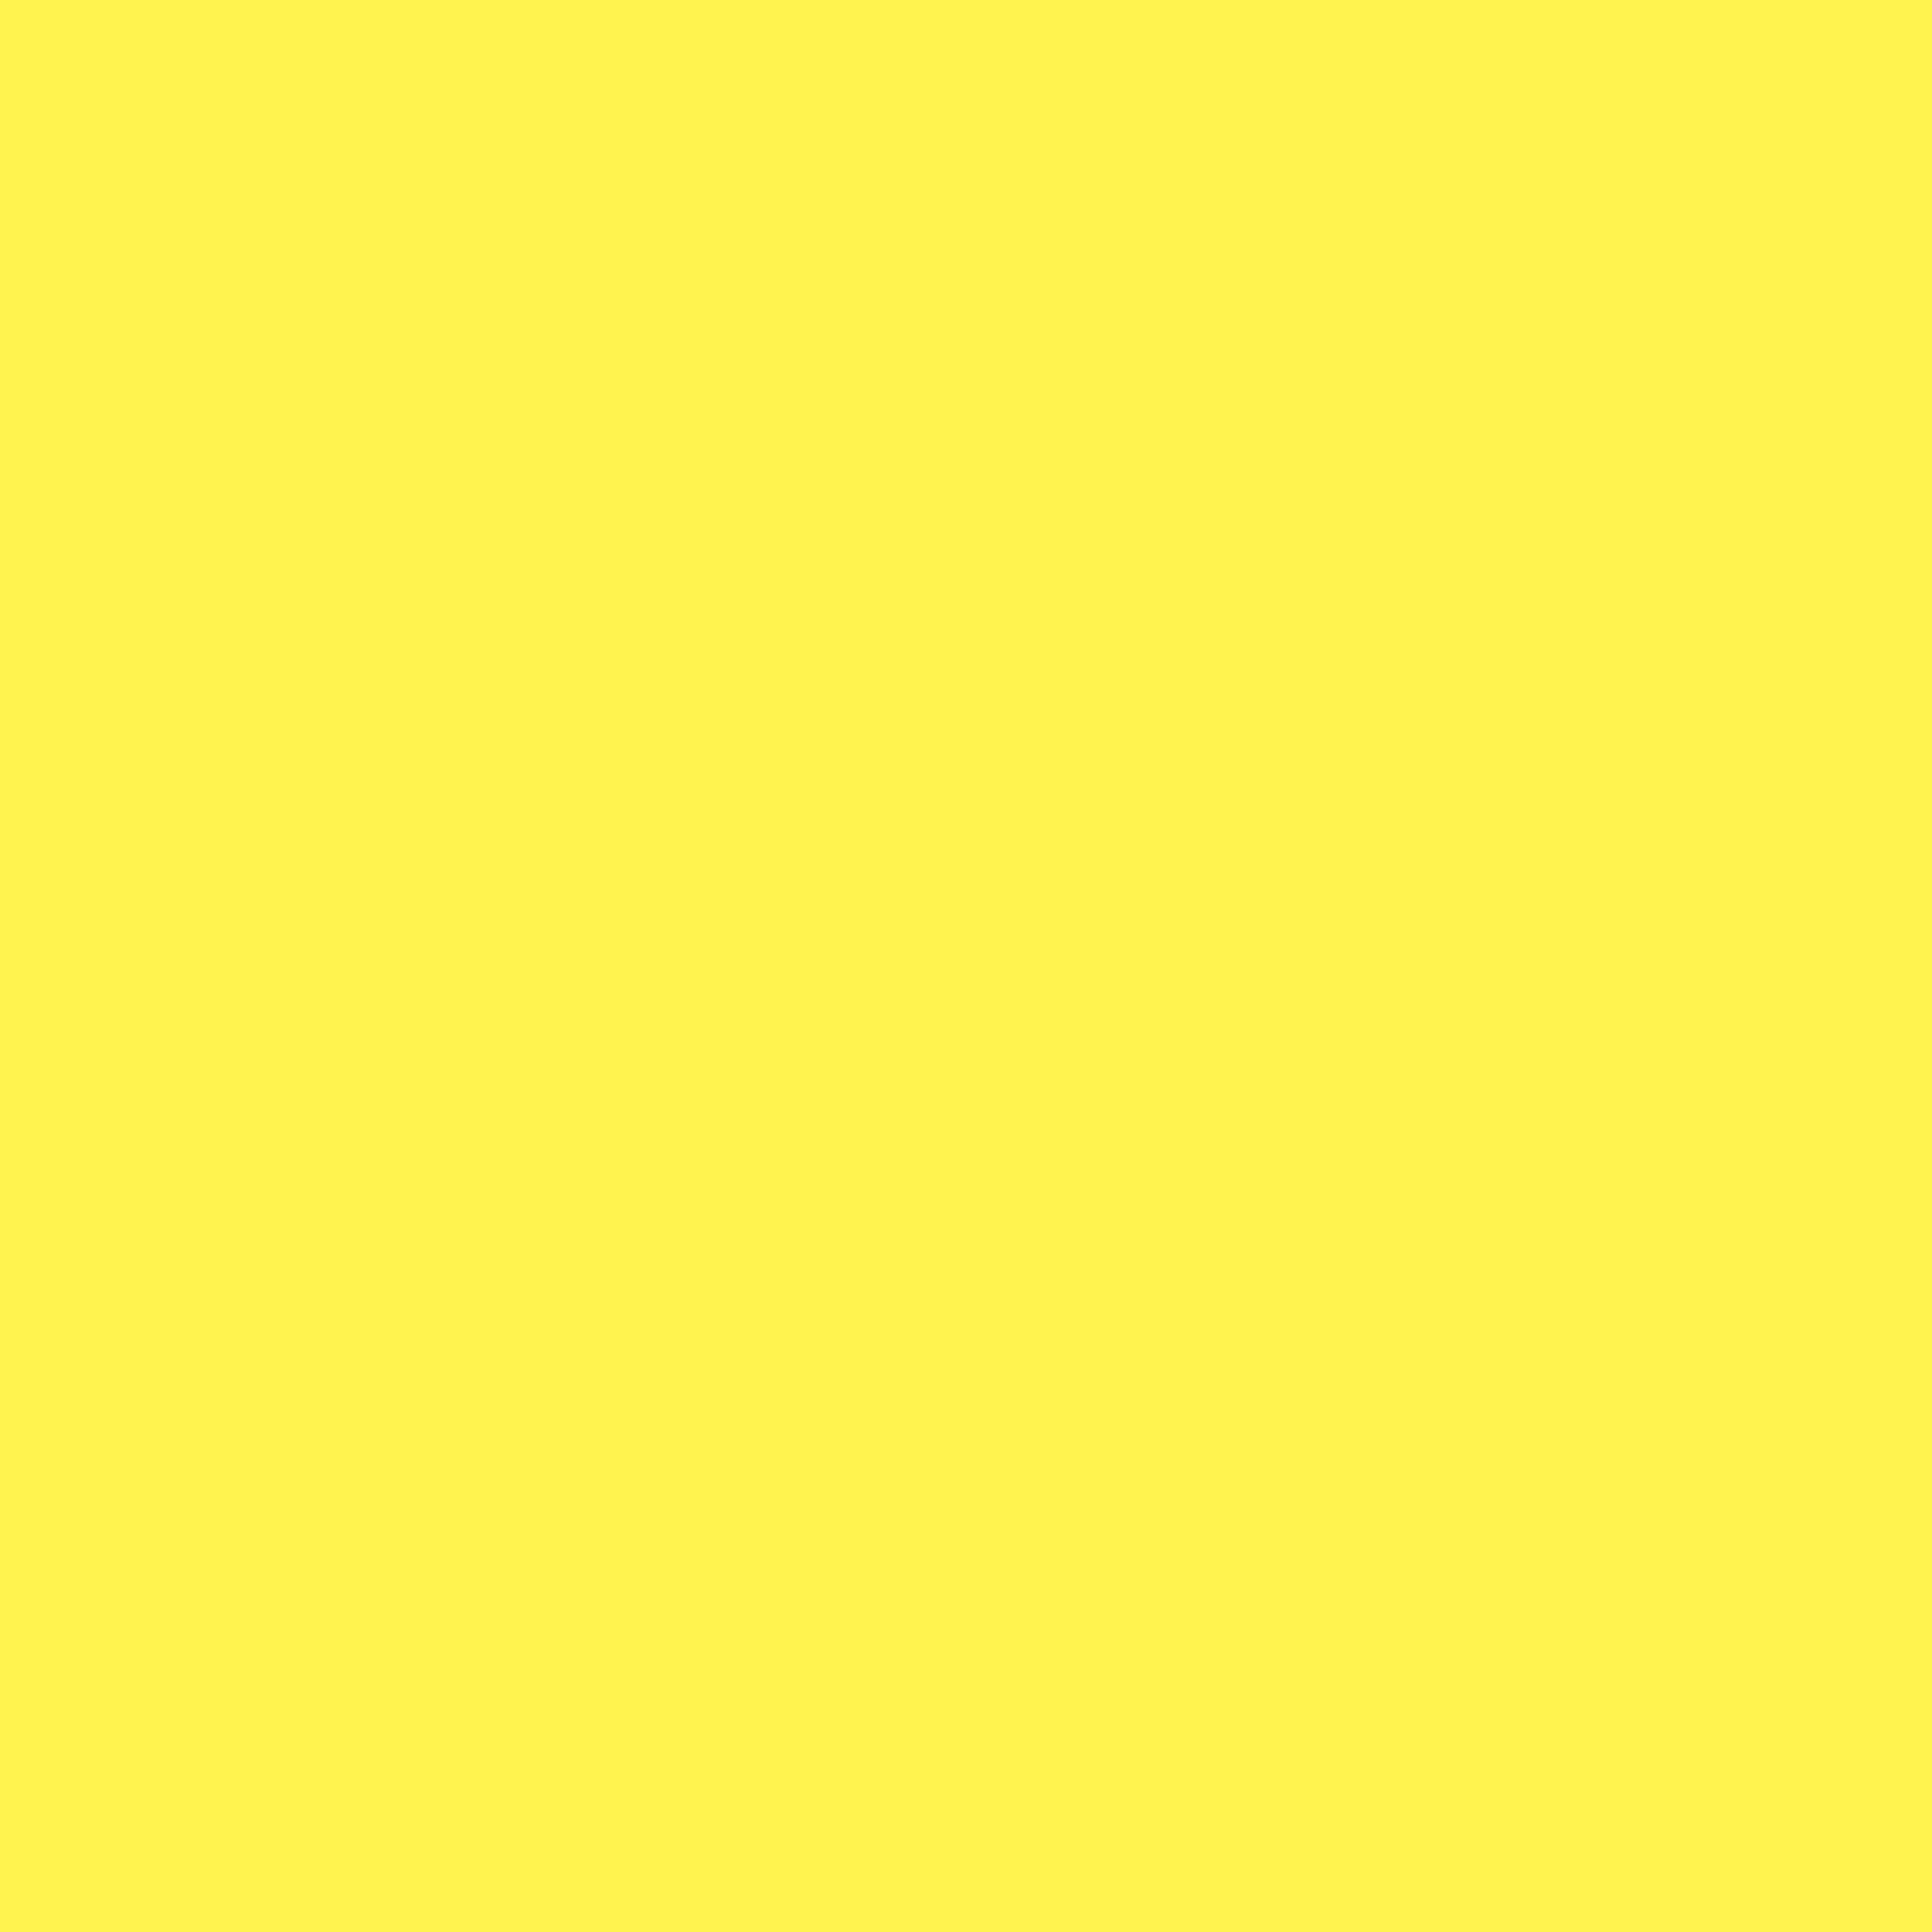 3600x3600 Lemon Yellow Solid Color Background